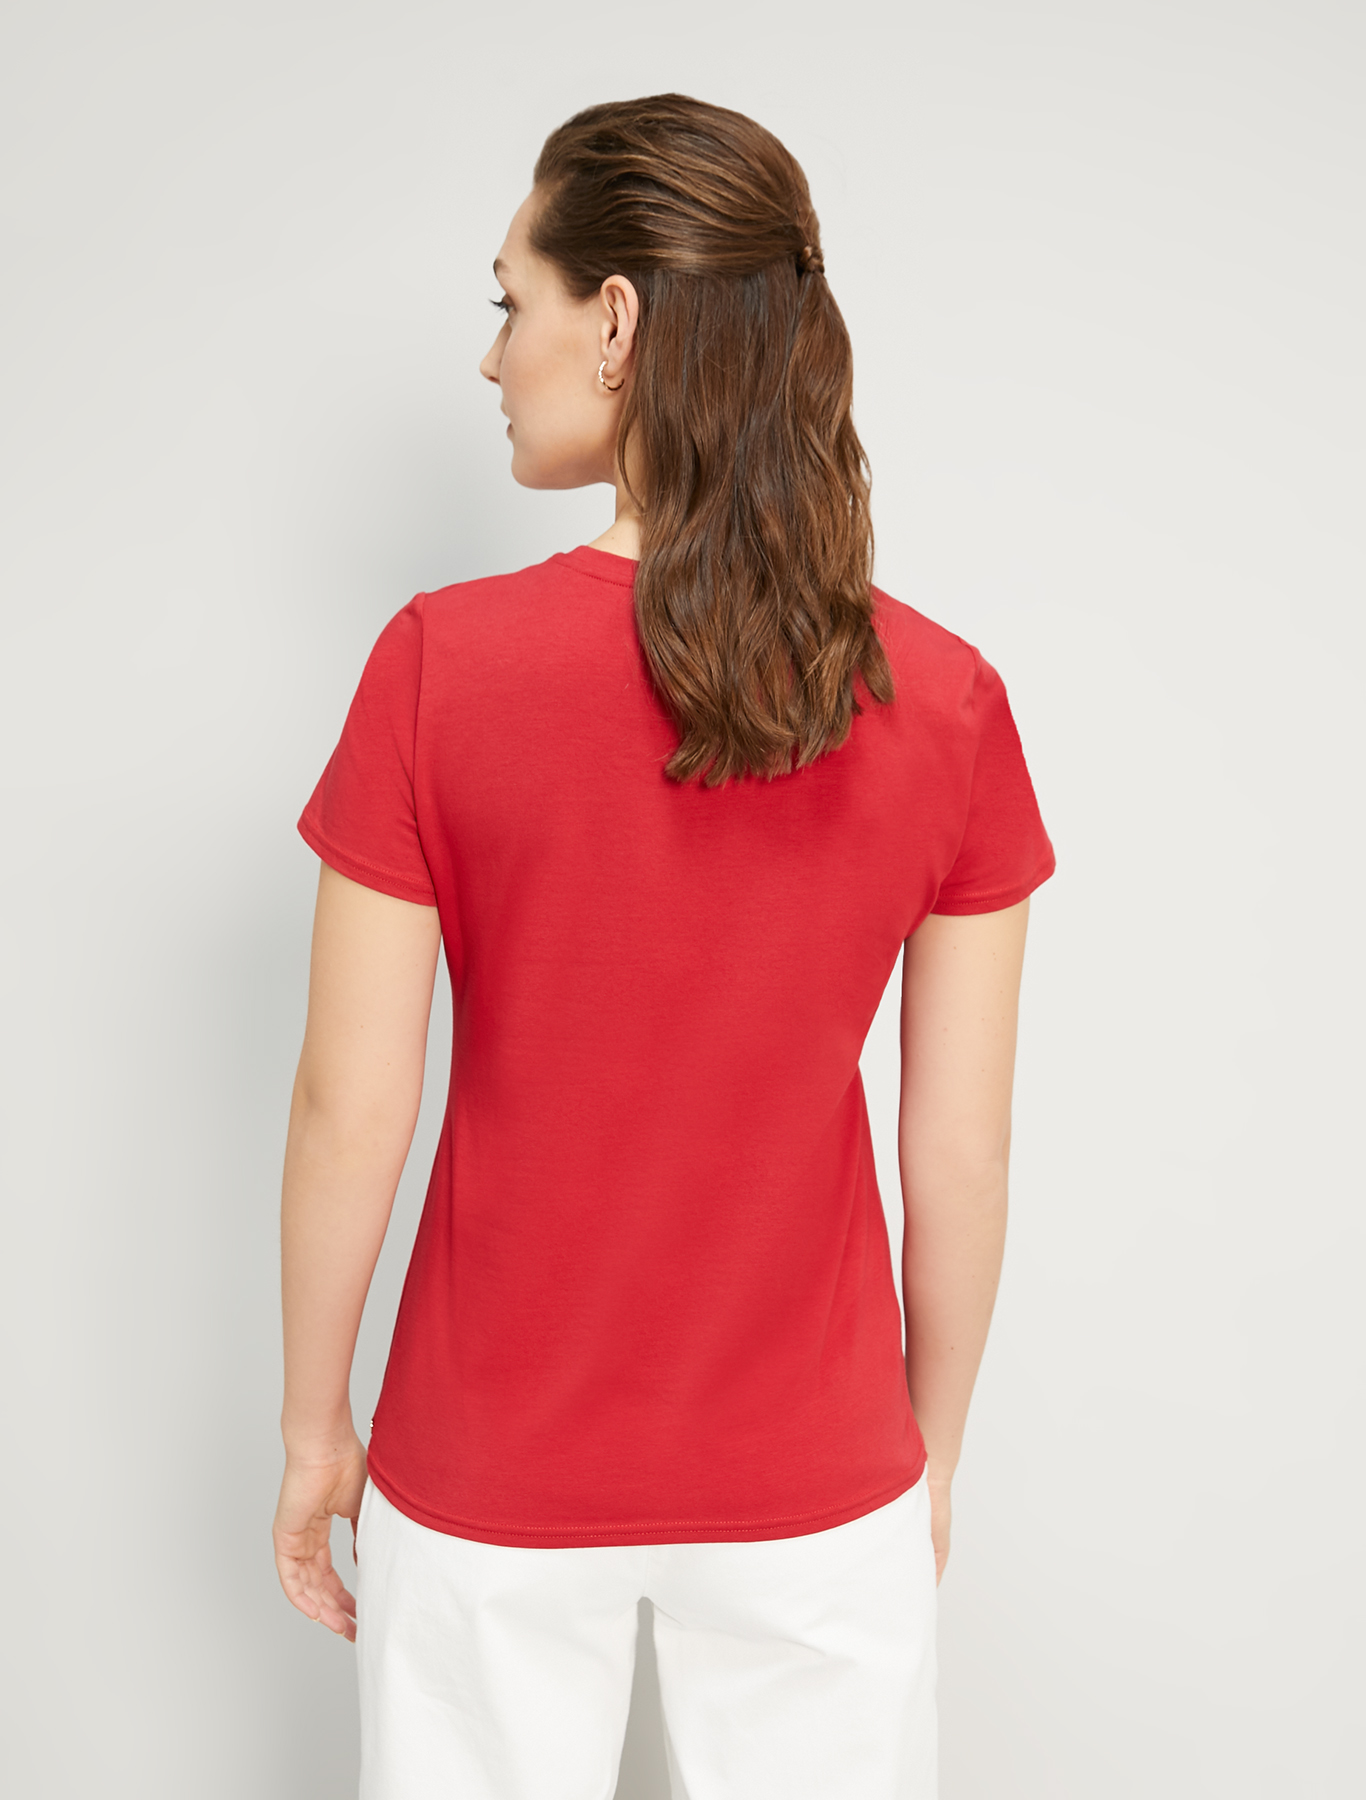 Cotton T-shirt with print - red - pennyblack